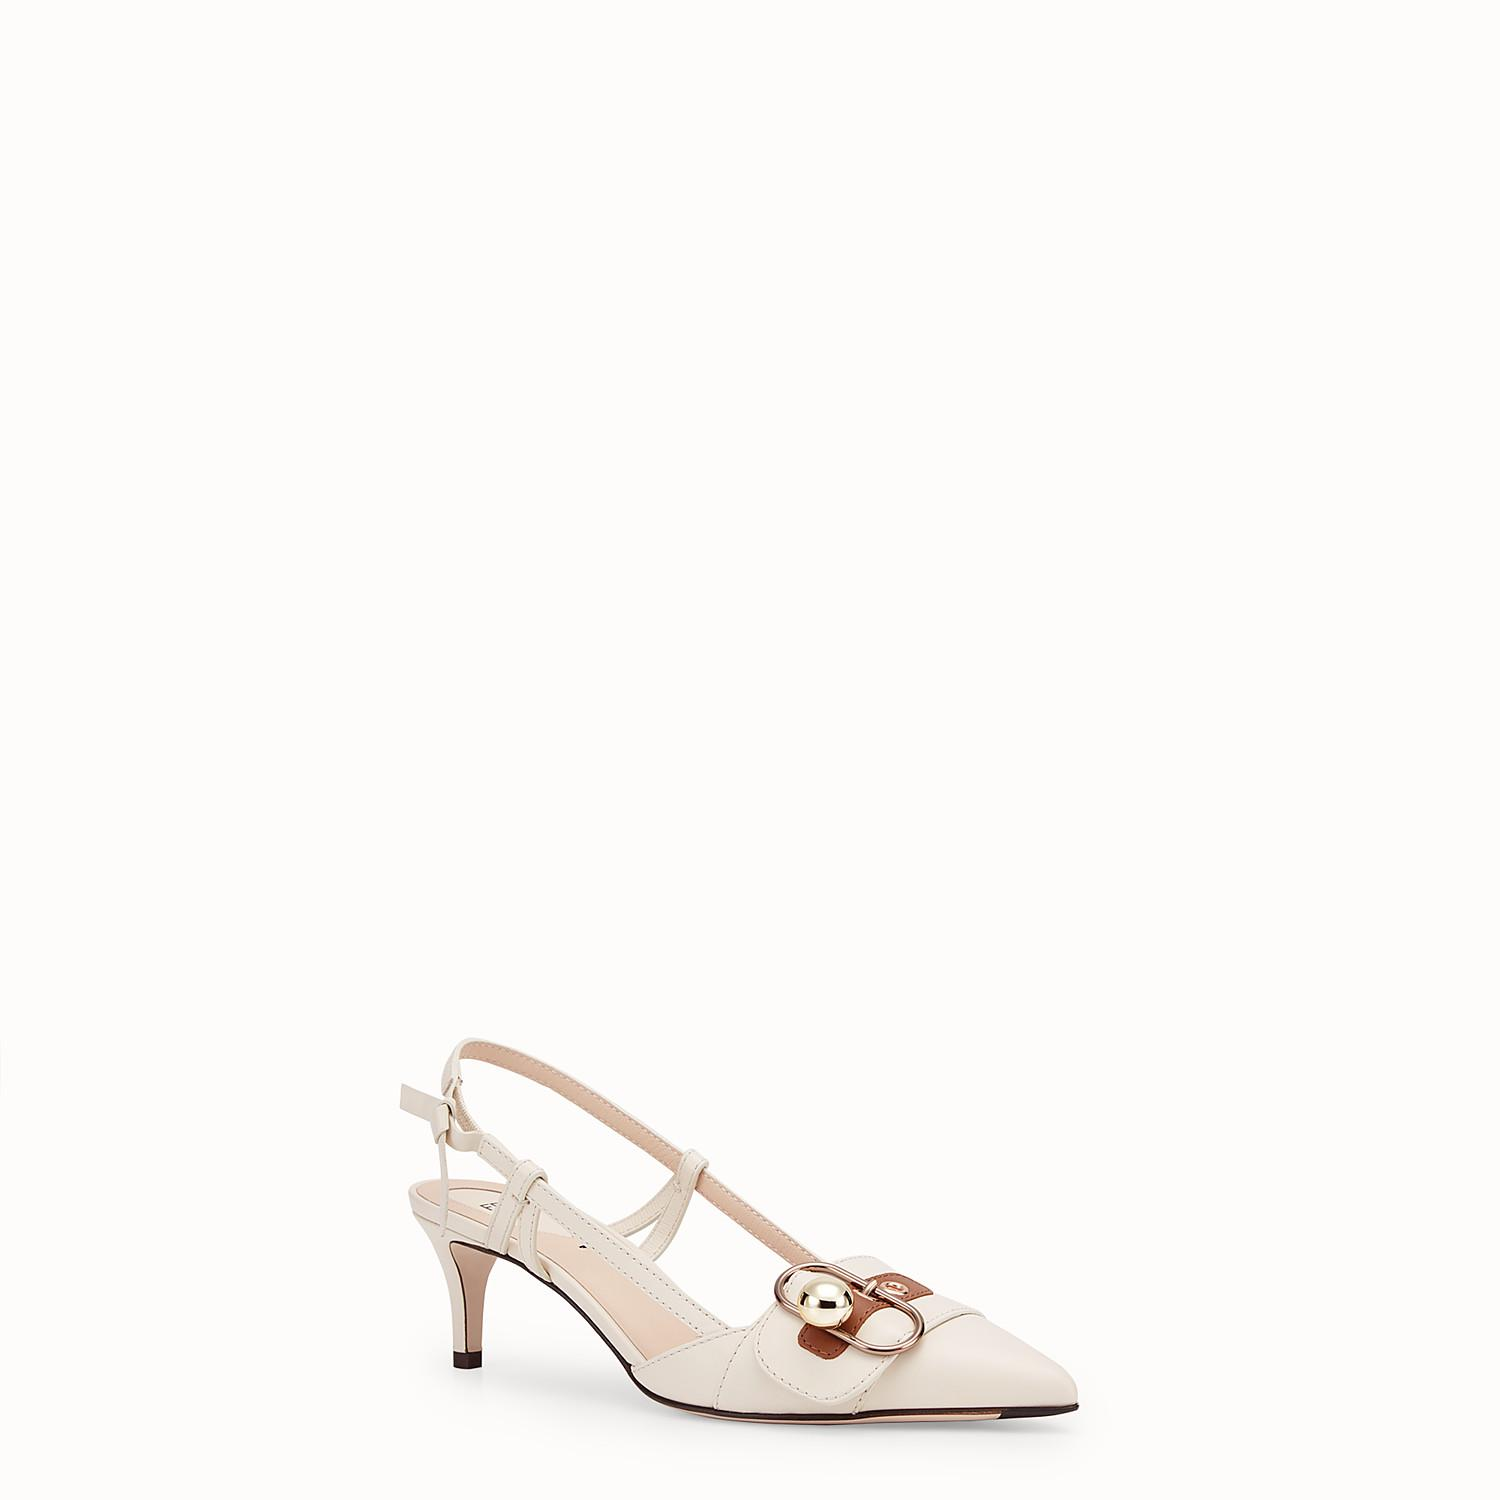 Fendi Leather Court Shoes in White - Lyst